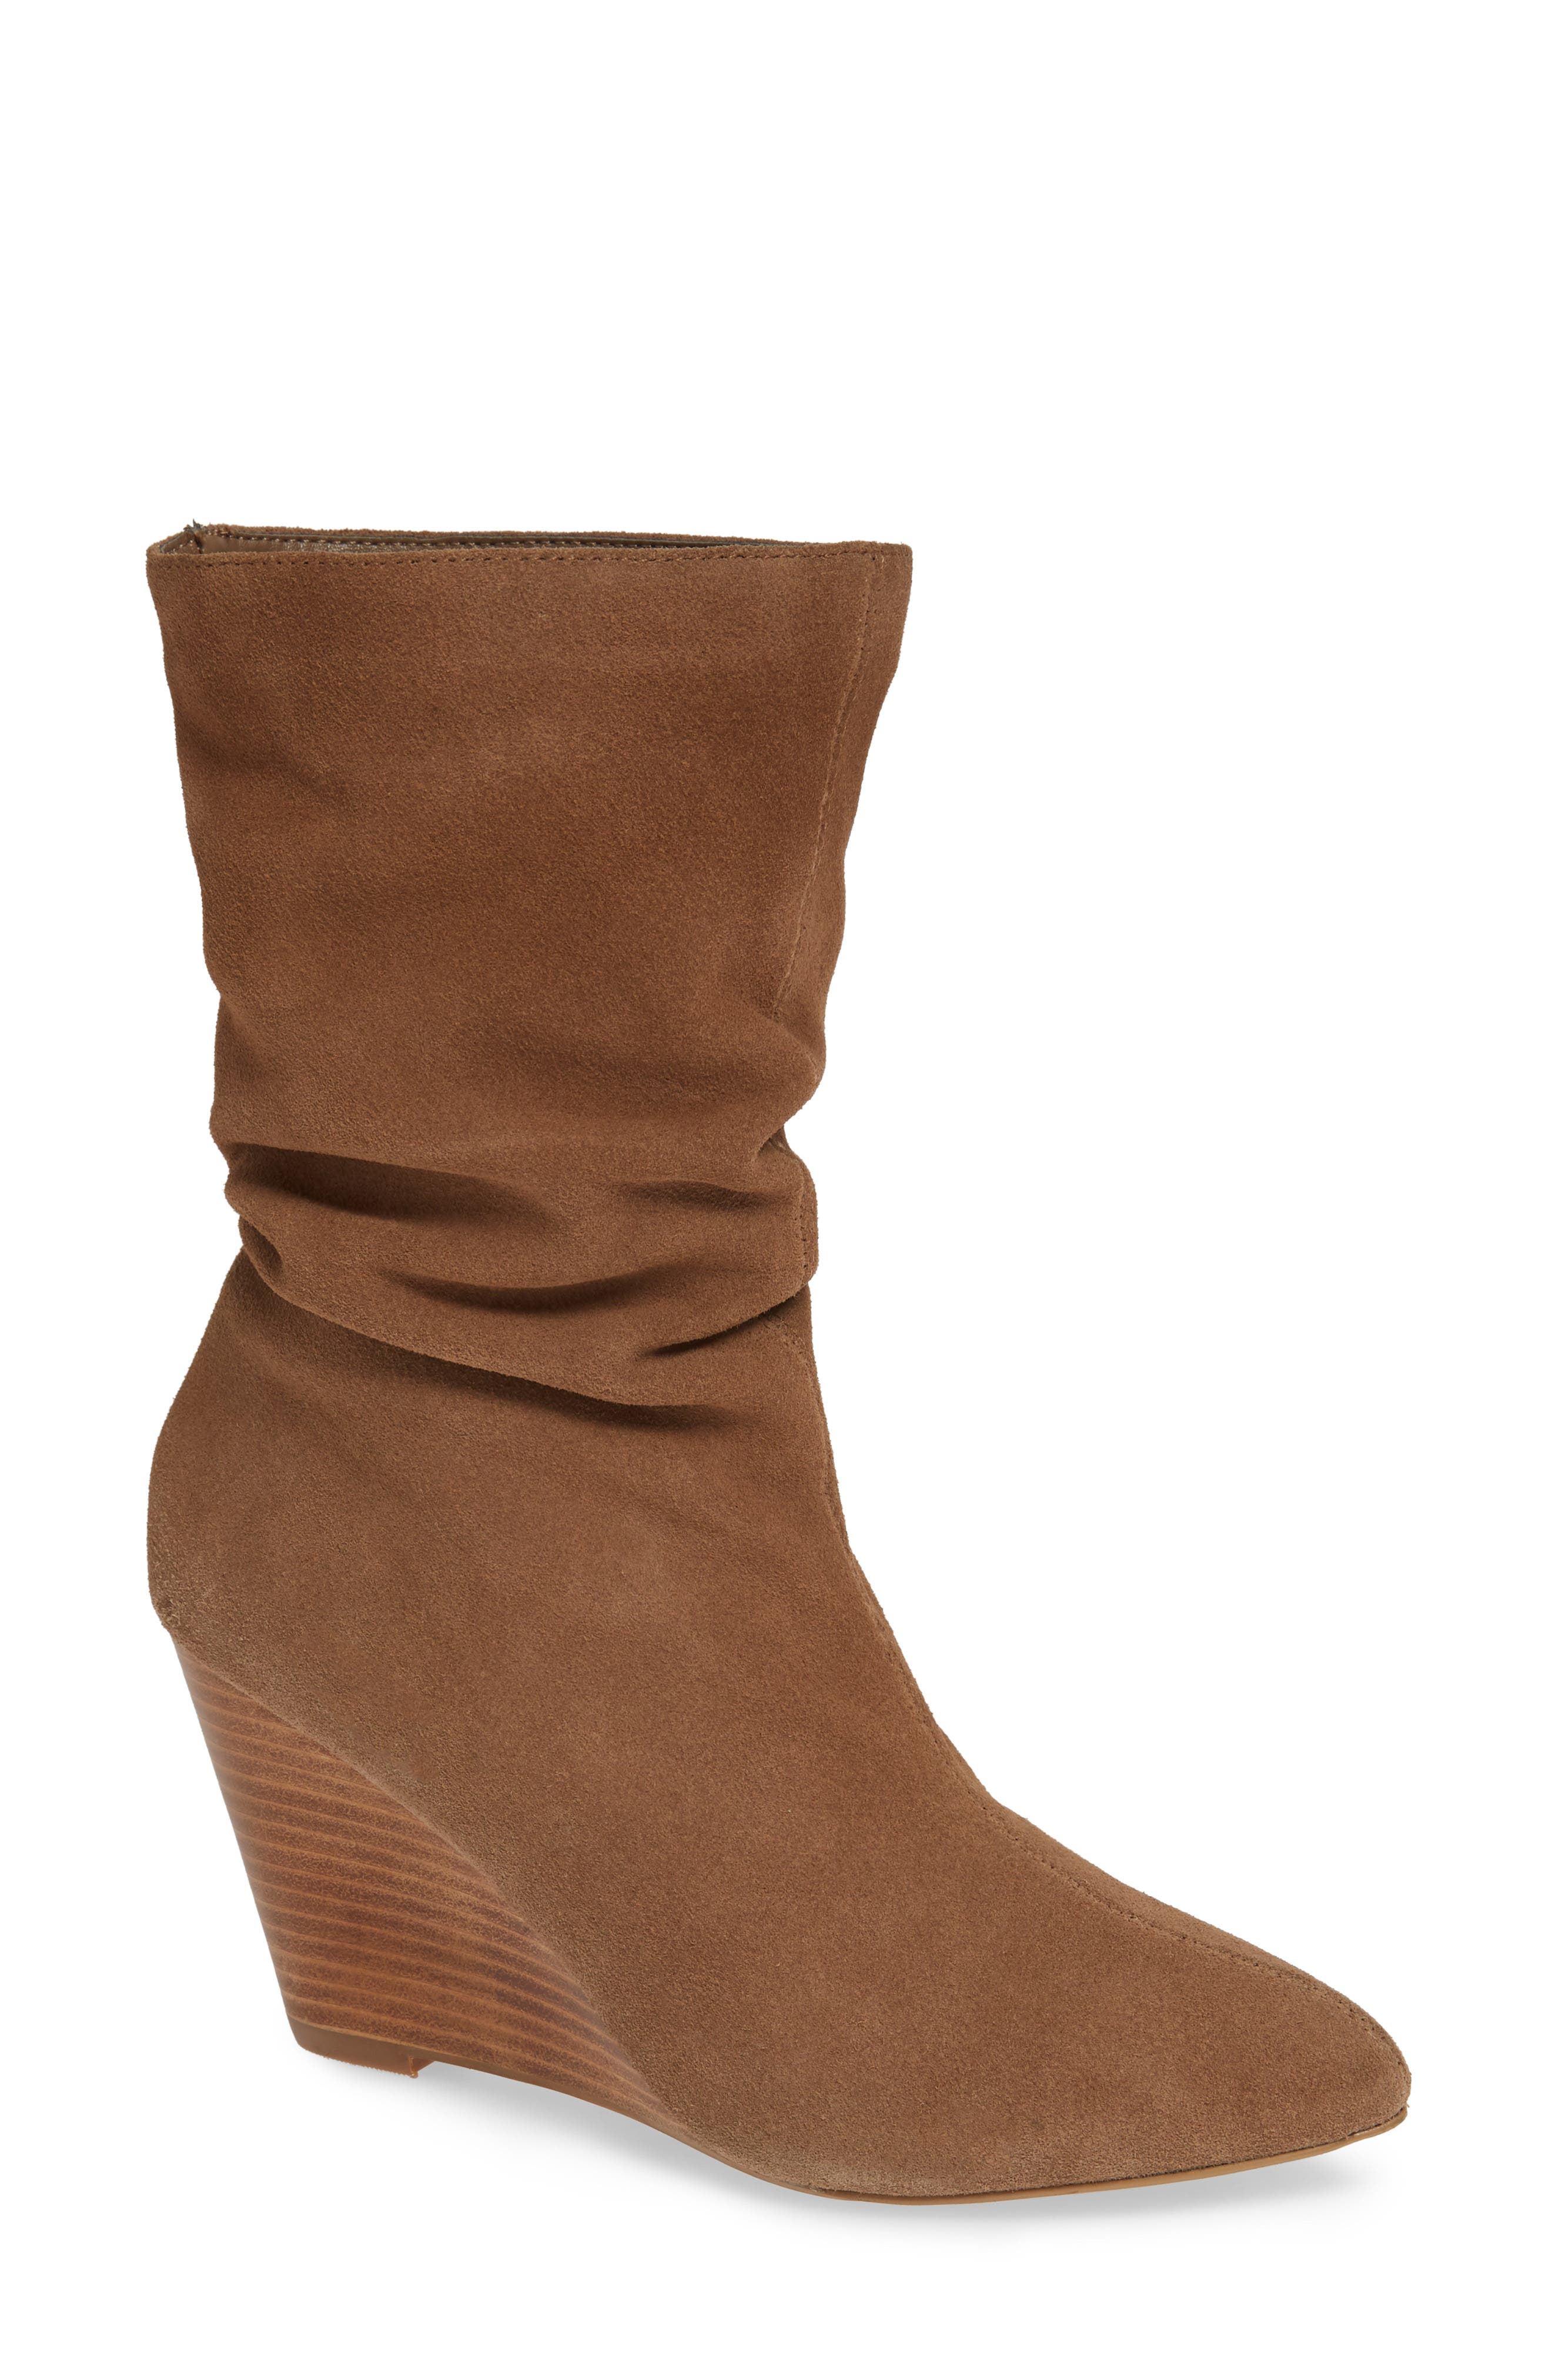 CHARLES BY CHARLES DAVID, Edell Slouchy Wedge Boot, Main thumbnail 1, color, TAUPE SUEDE